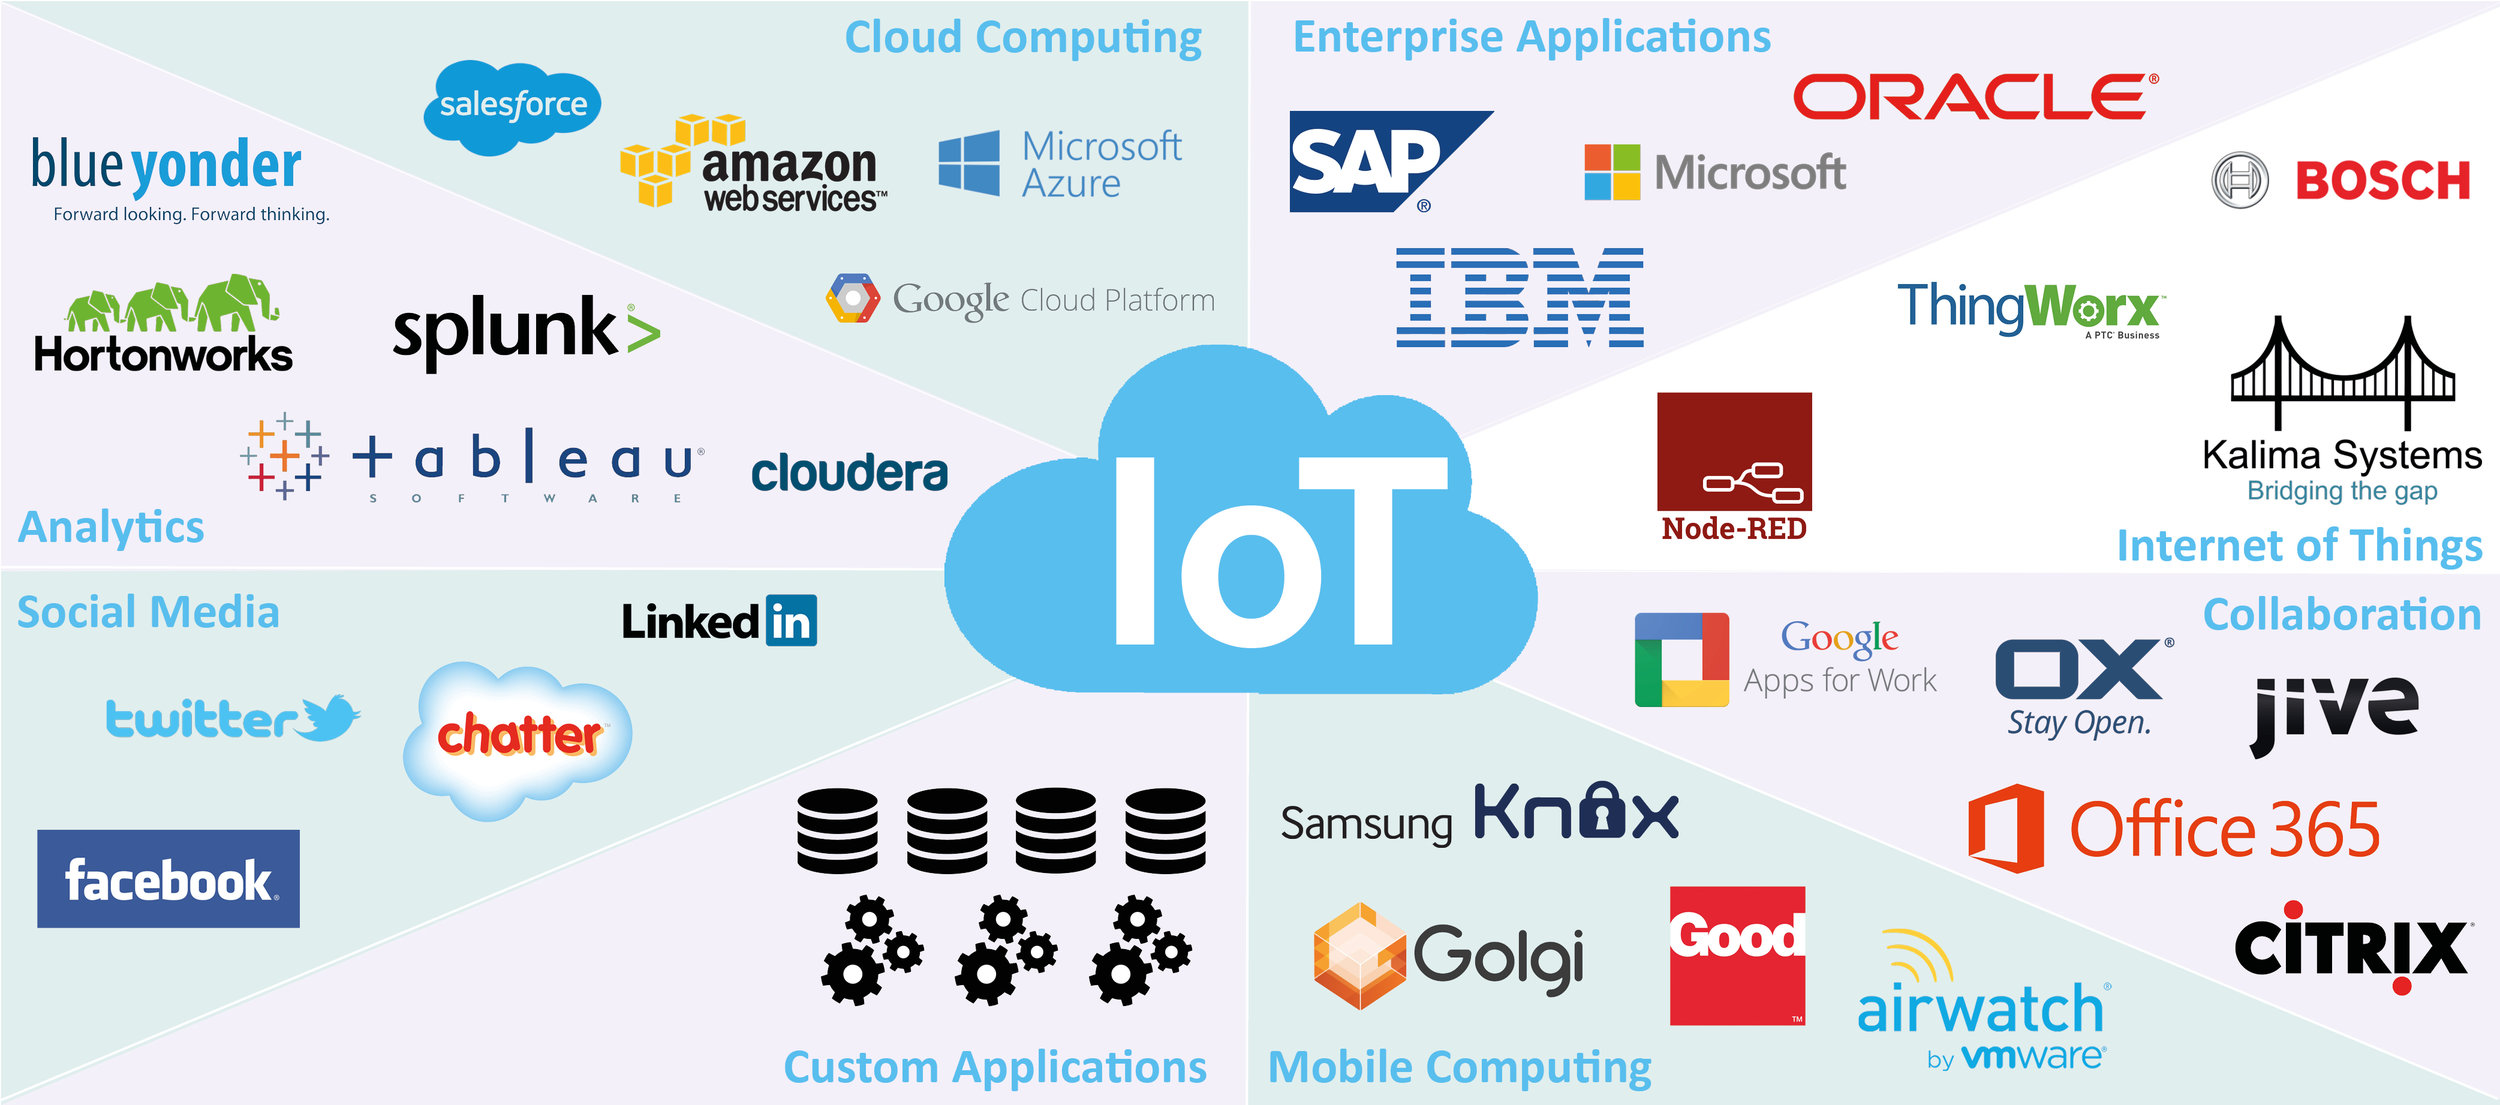 Kalima is an agile platform dedicated to Internet of Things, allowing complex treatments at Edge, Fog and Cloud levels.